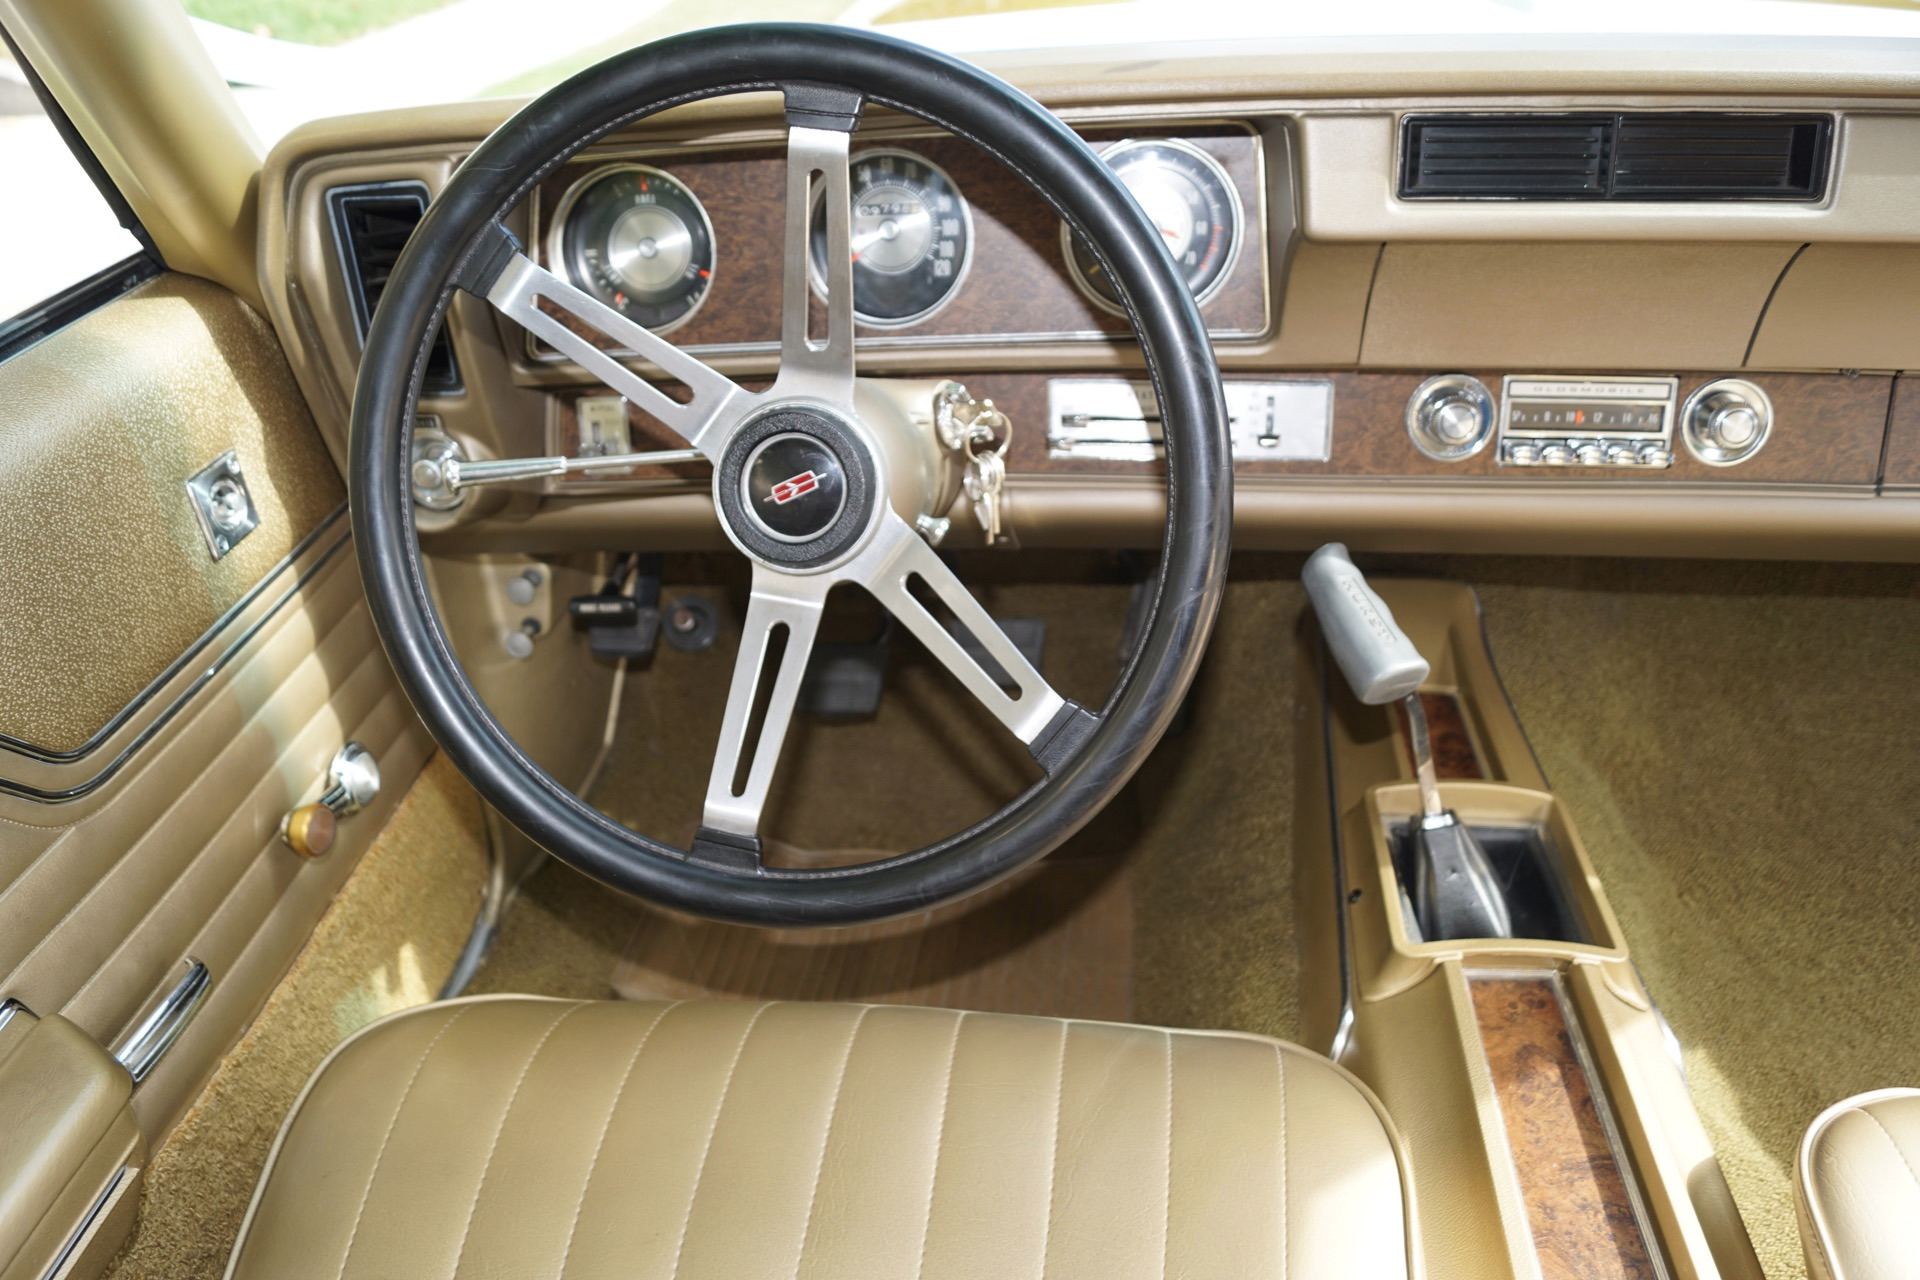 1970 Oldsmobile 442 Gold Bucket Seats Stock # 230 for sale